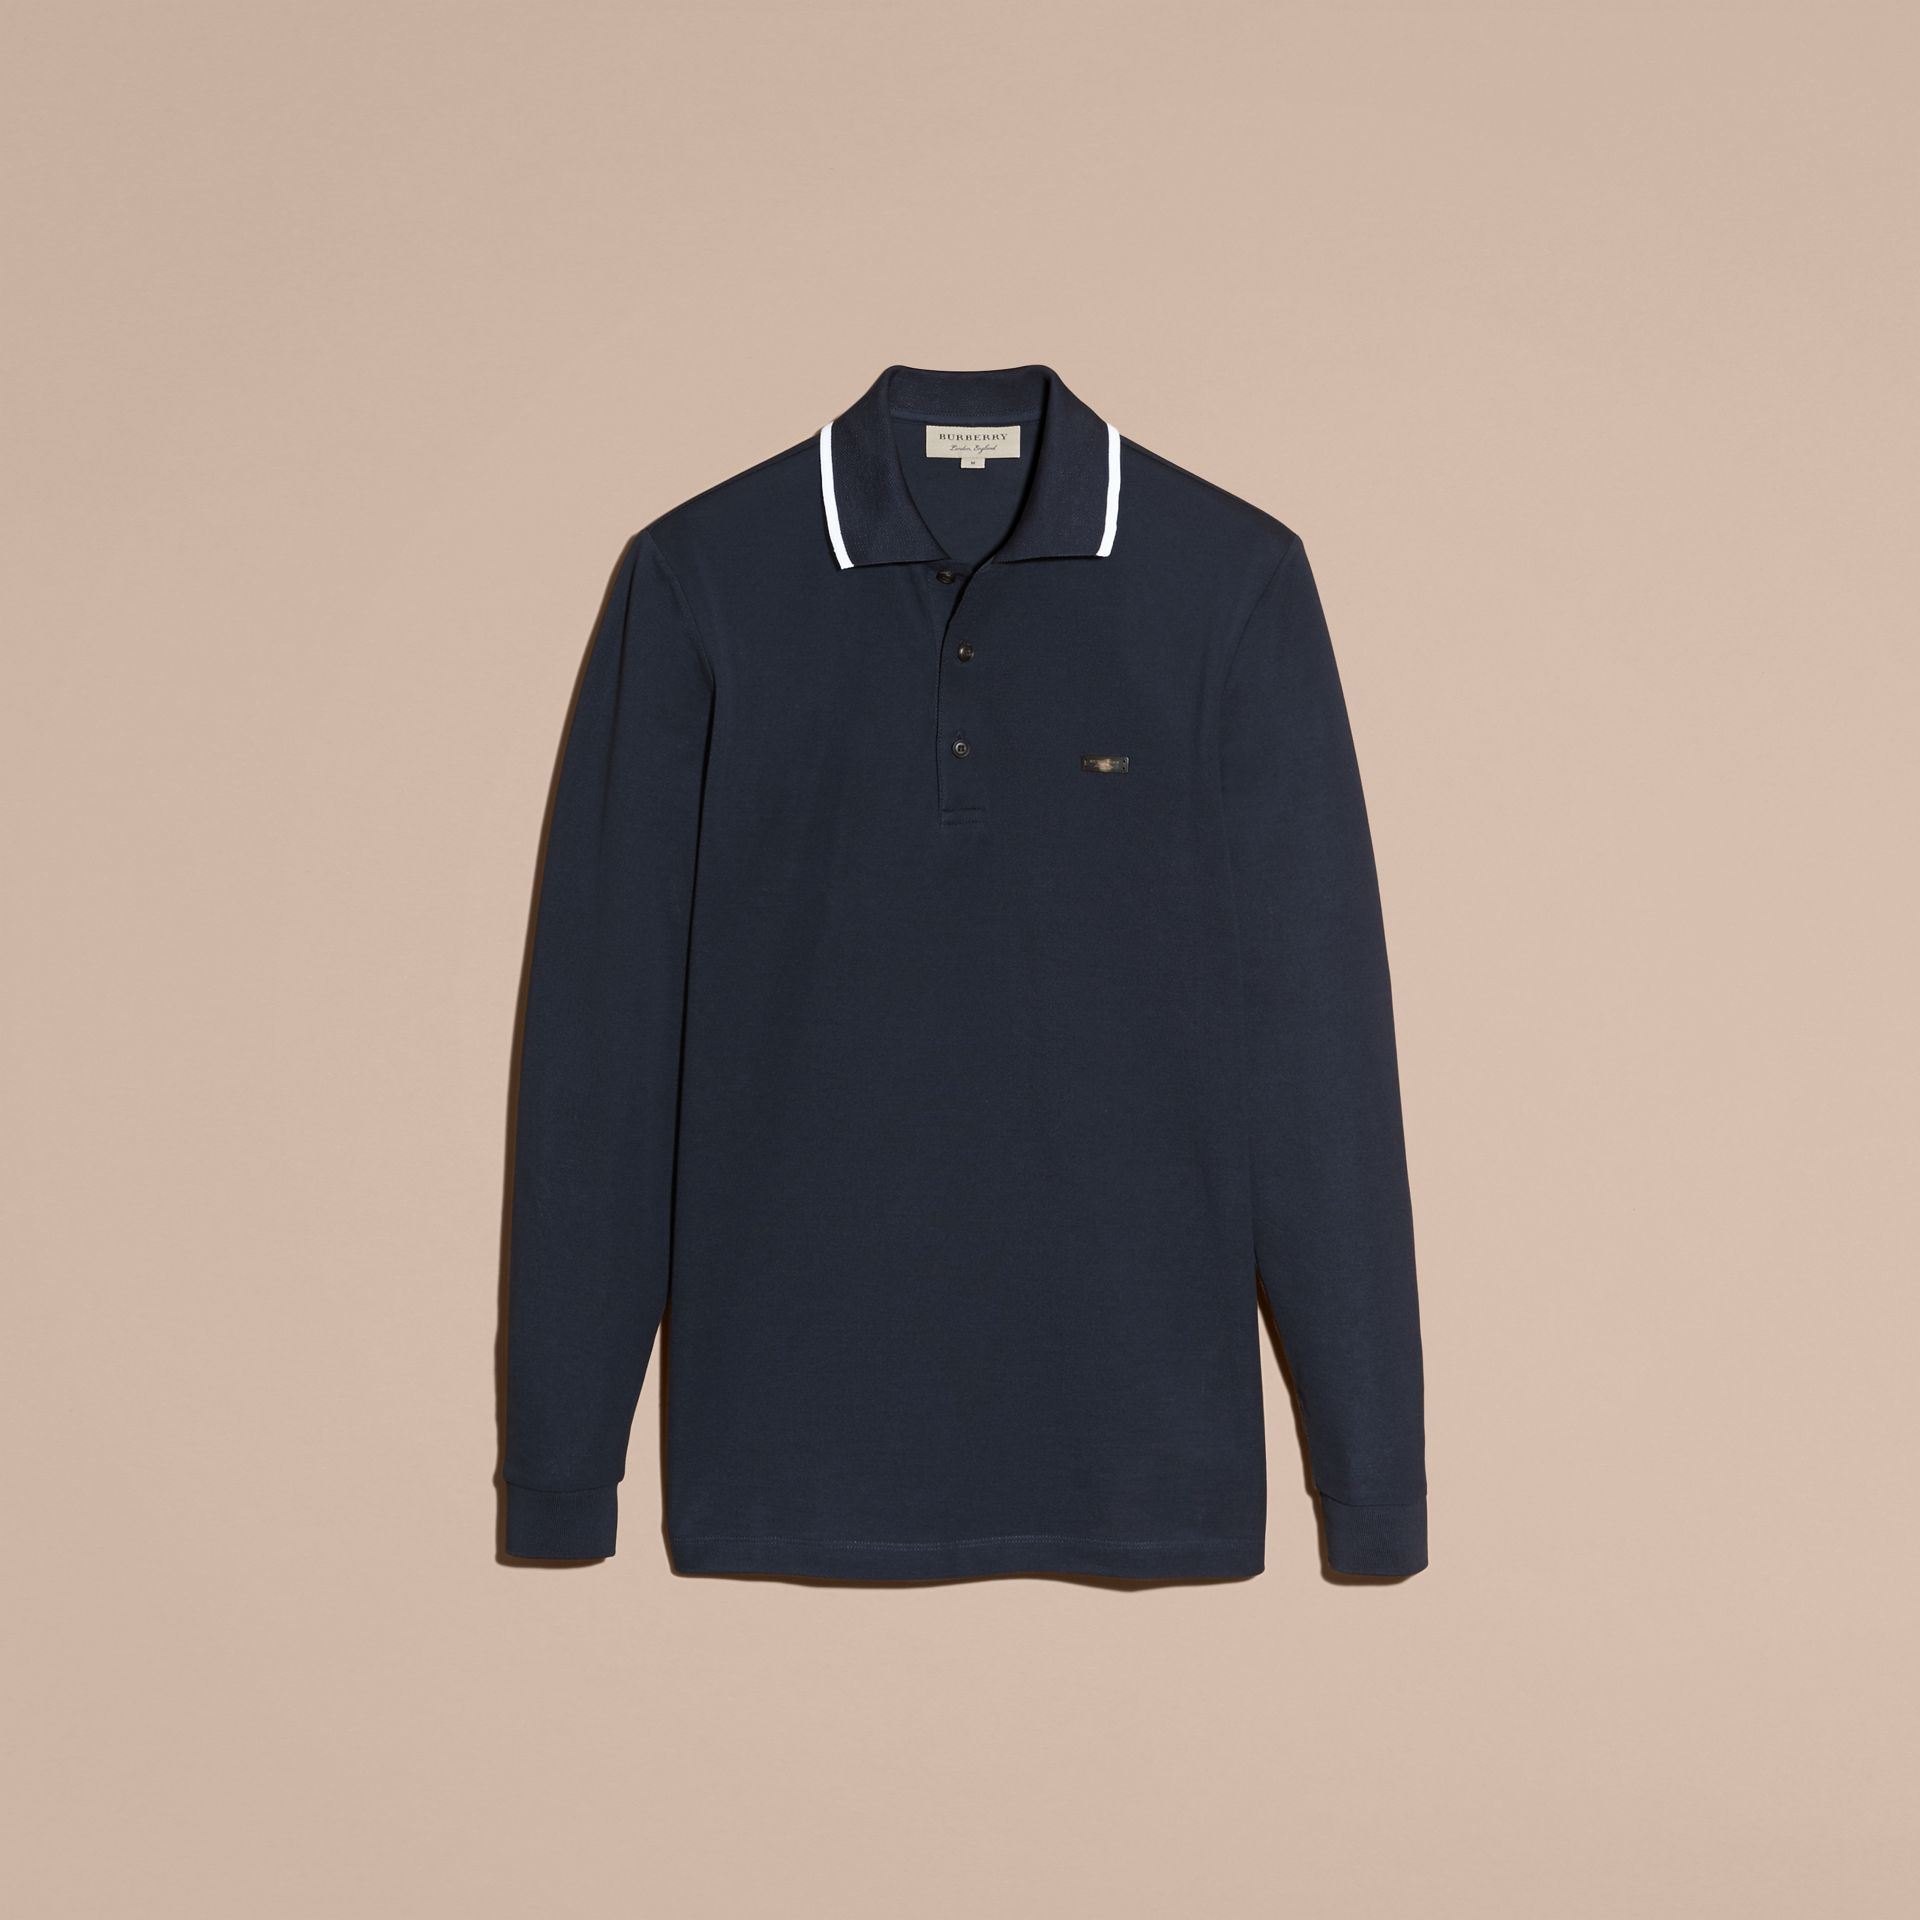 Navy Long-sleeved Tipped Cotton Piqué Polo Shirt Navy - gallery image 4